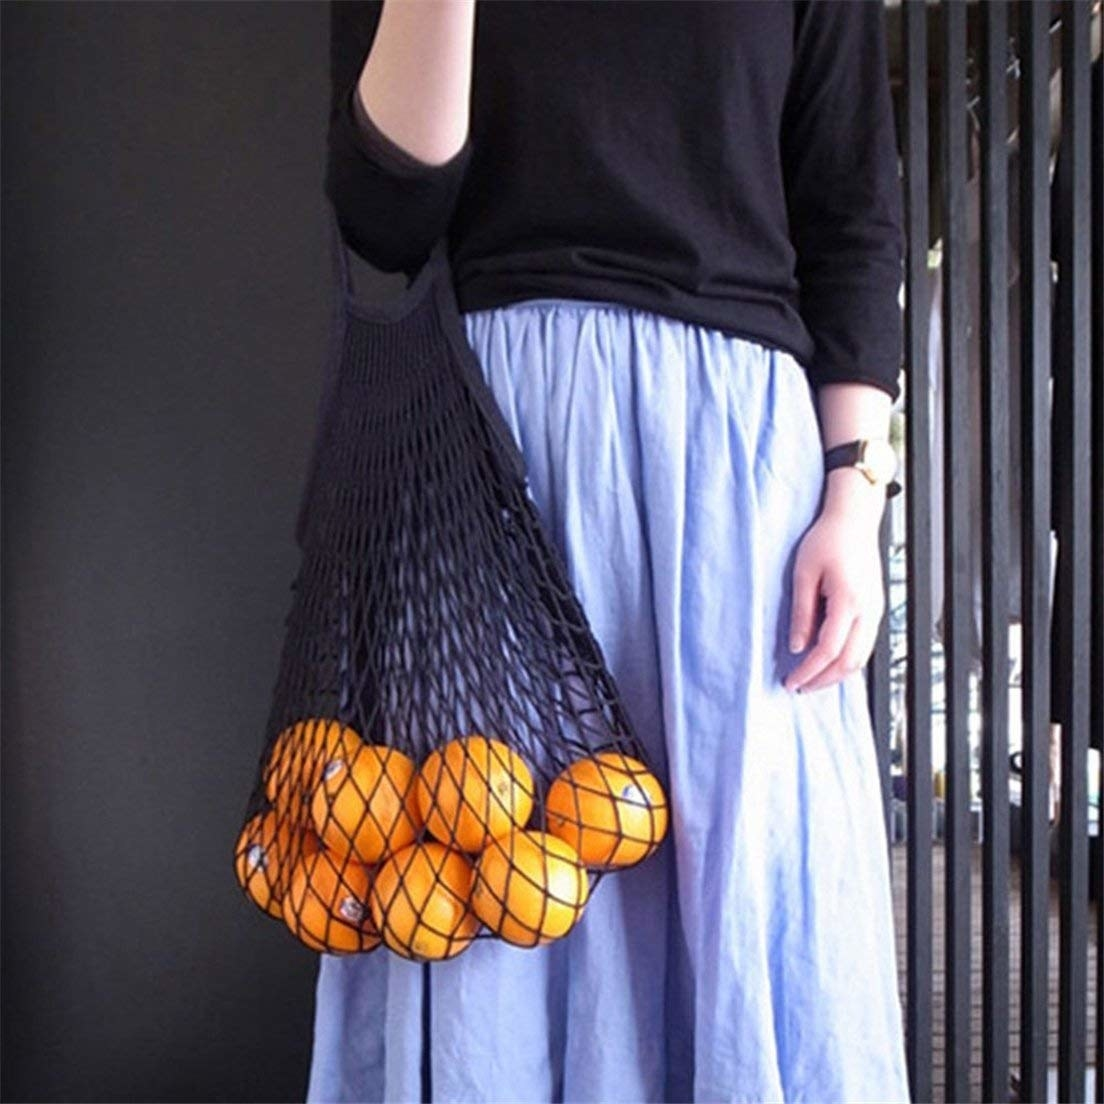 A person holding the net grocery bag filled with oranges